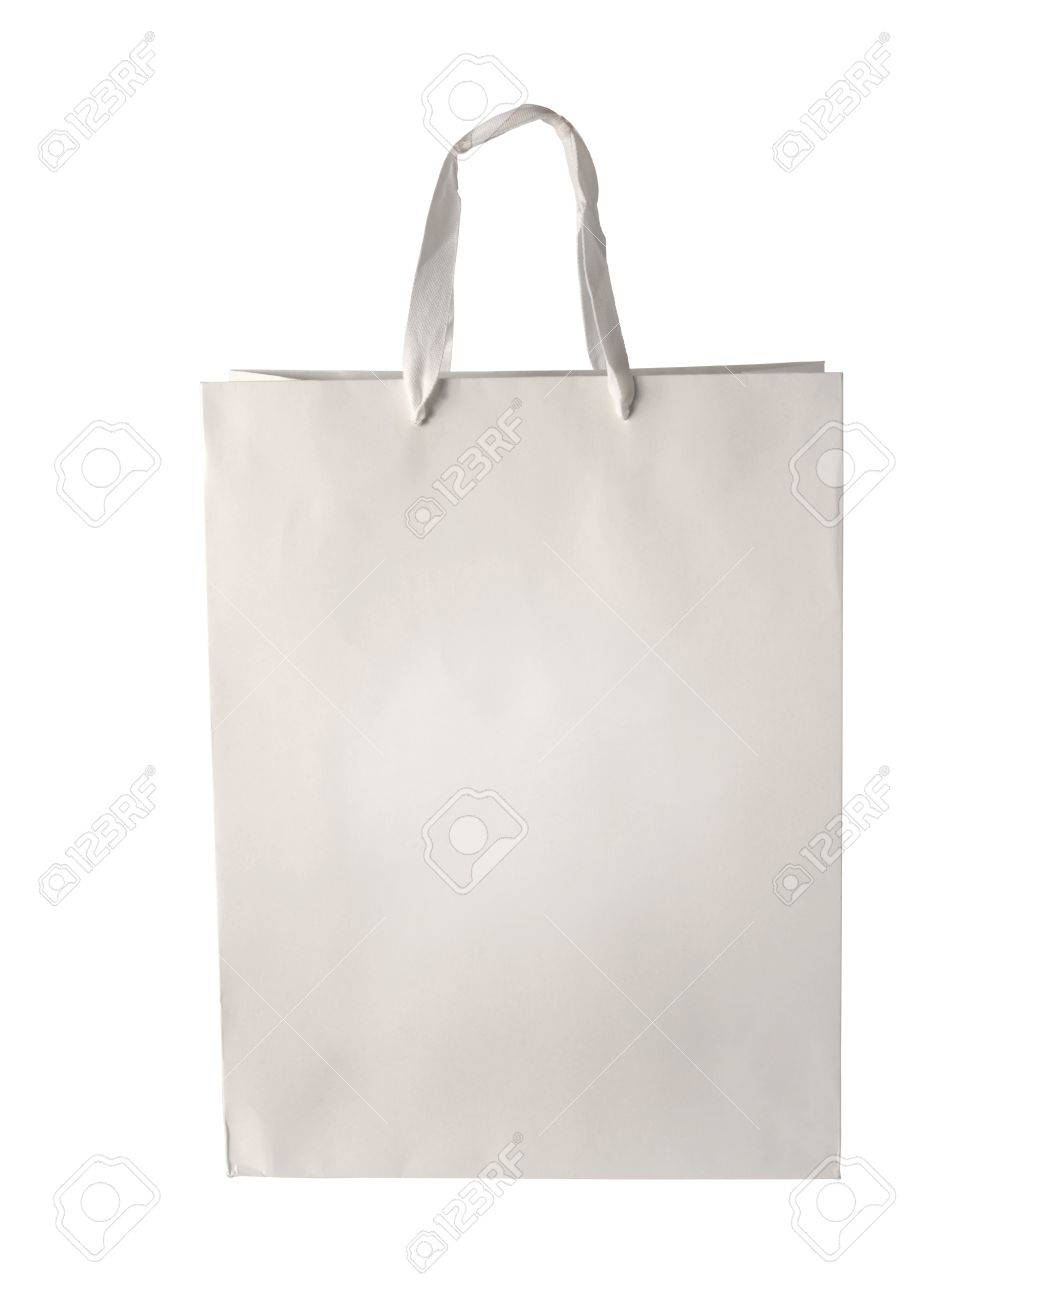 Cardboard Shopping Bag Template Isolated On White Background. Stock ...